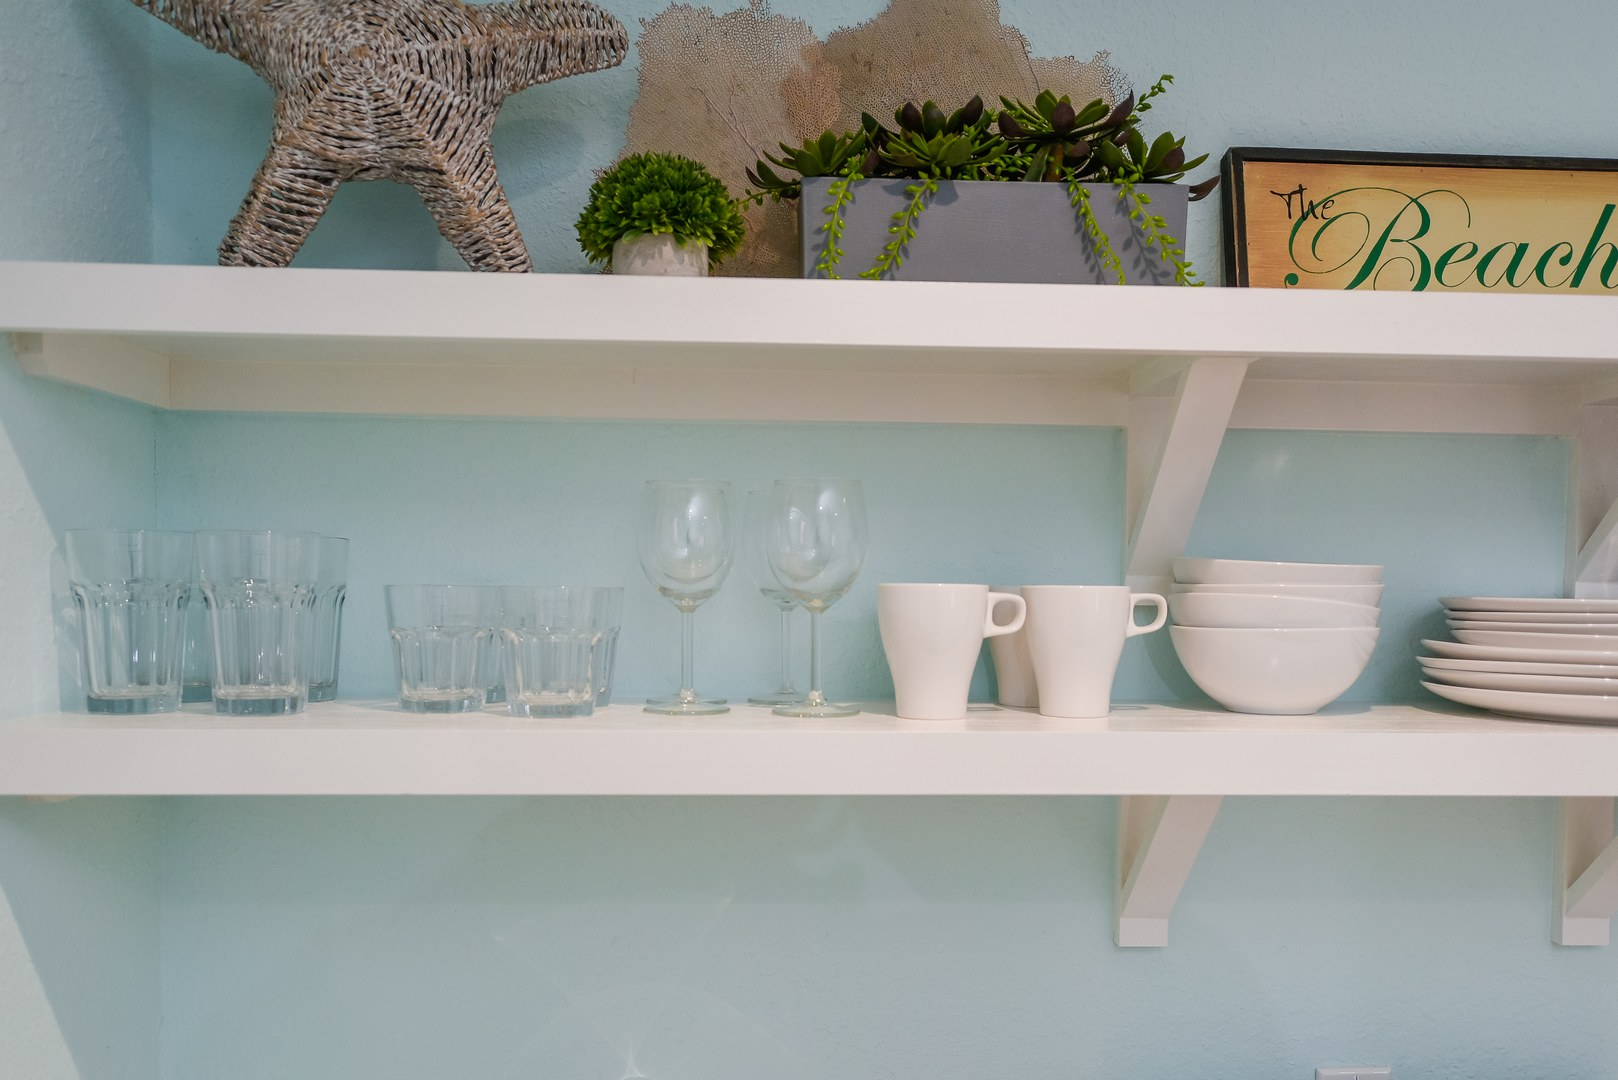 We Stock the Kitchen with Dishes, Cups, Utensils, Pots/Pans